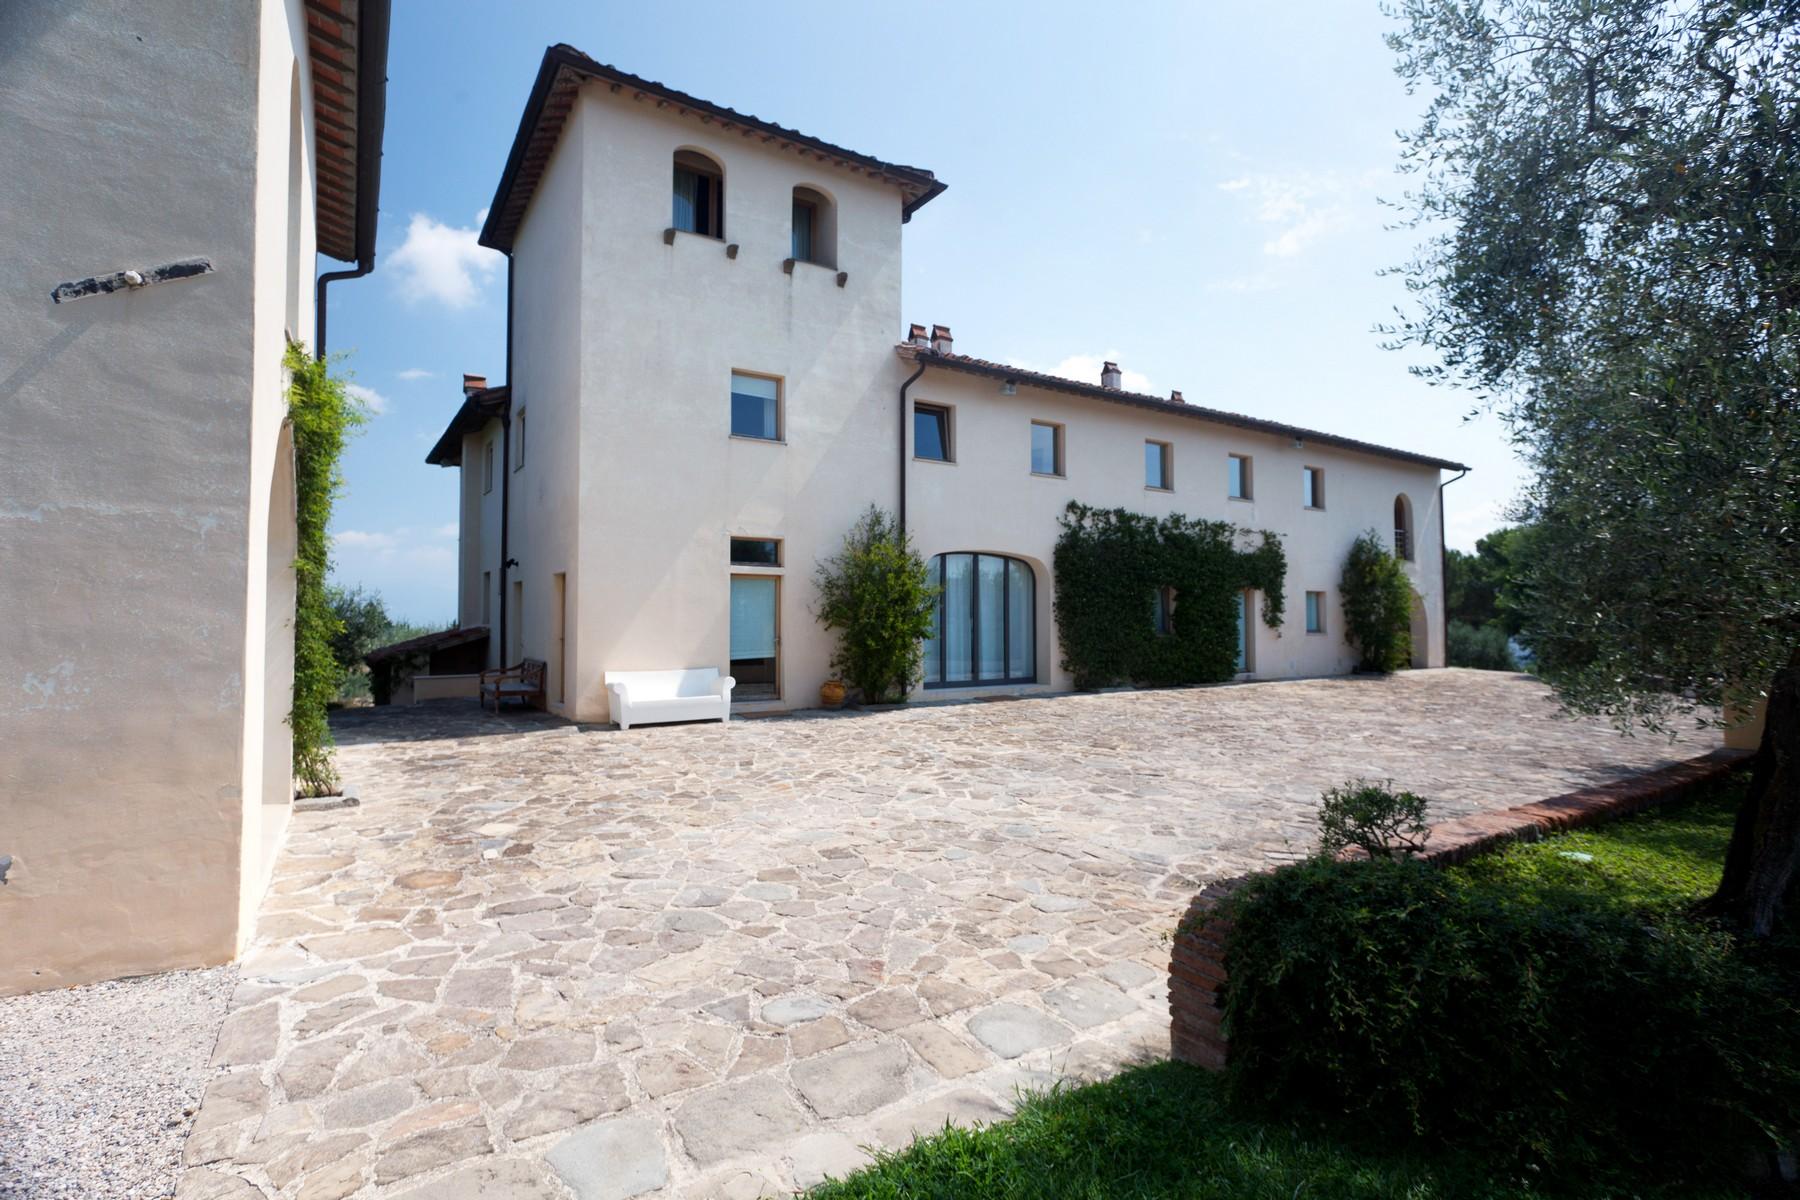 Single Family Home for Sale at Sophisticated Design Villa near Florence Via San Romolo Firenze, Florence 50055 Italy